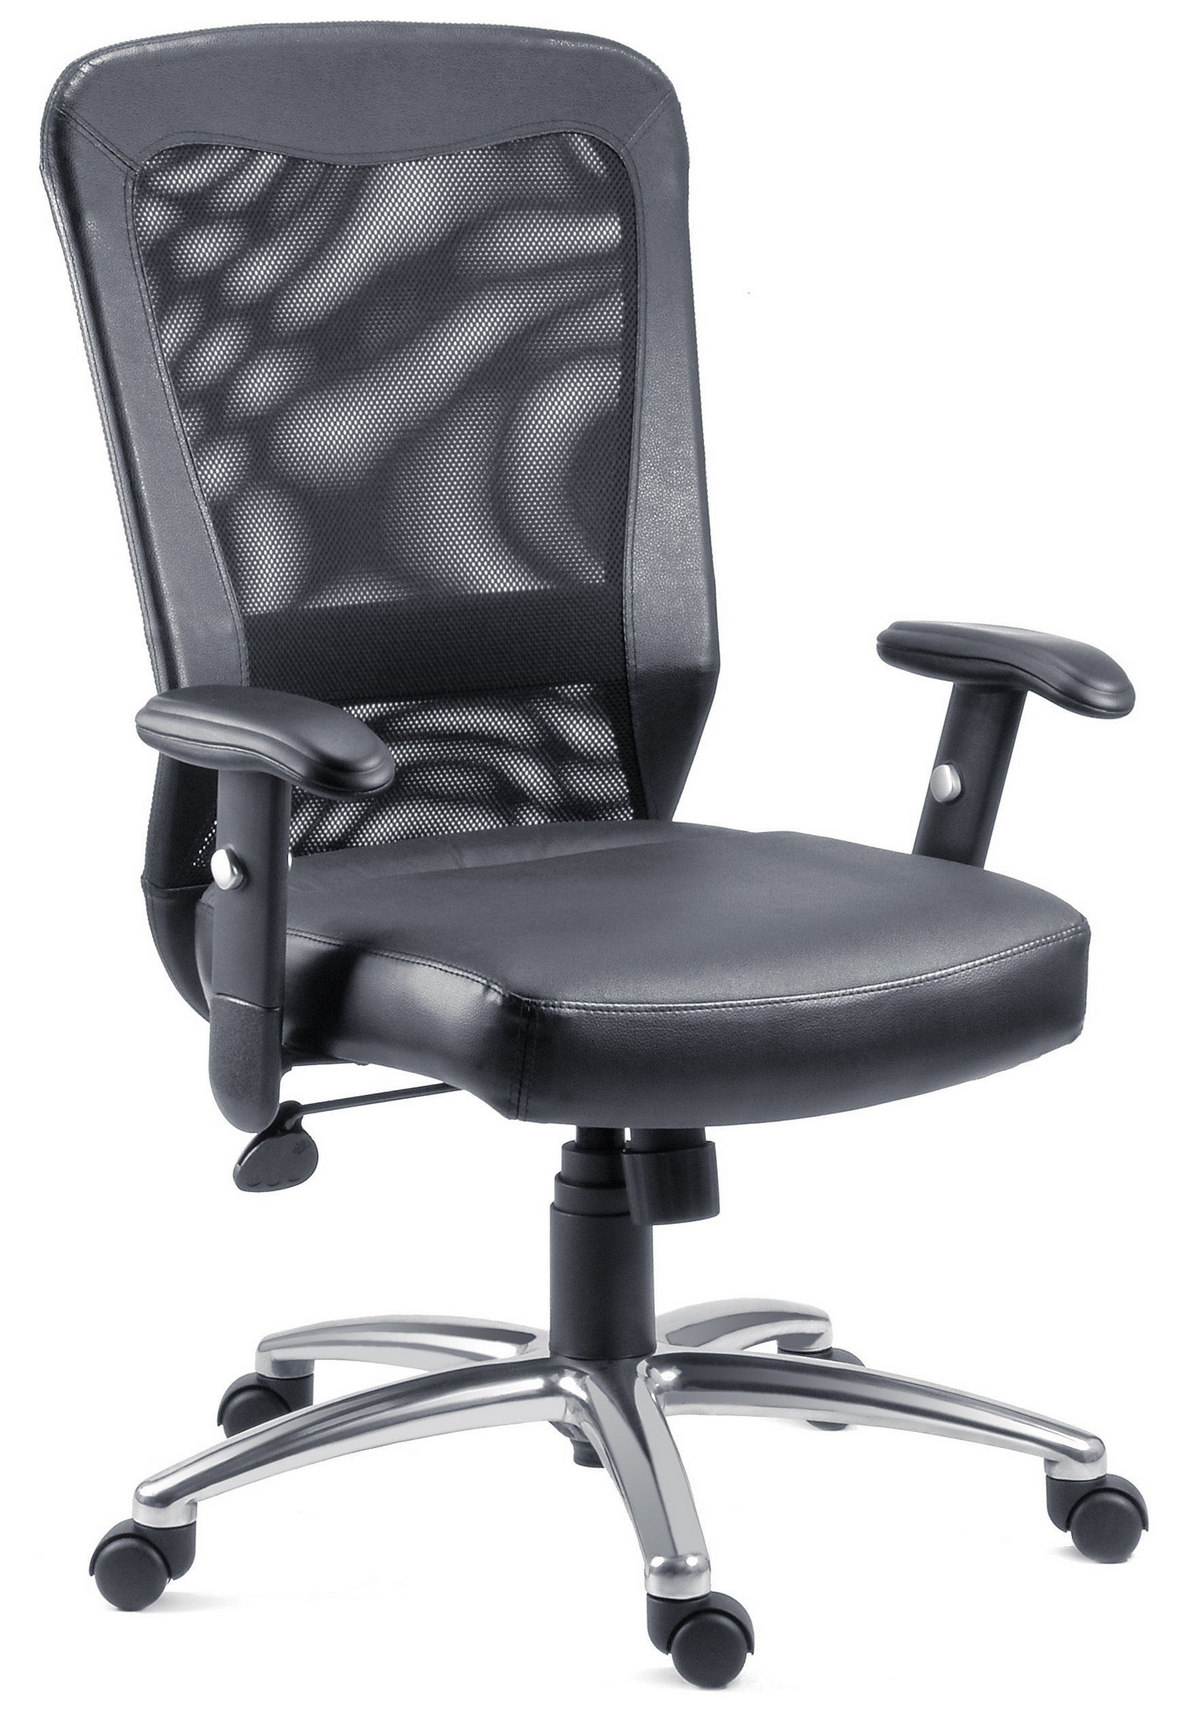 Ergonomic Office Chairs Breeze Ergonomic Office Chair Posture Chairs Uk